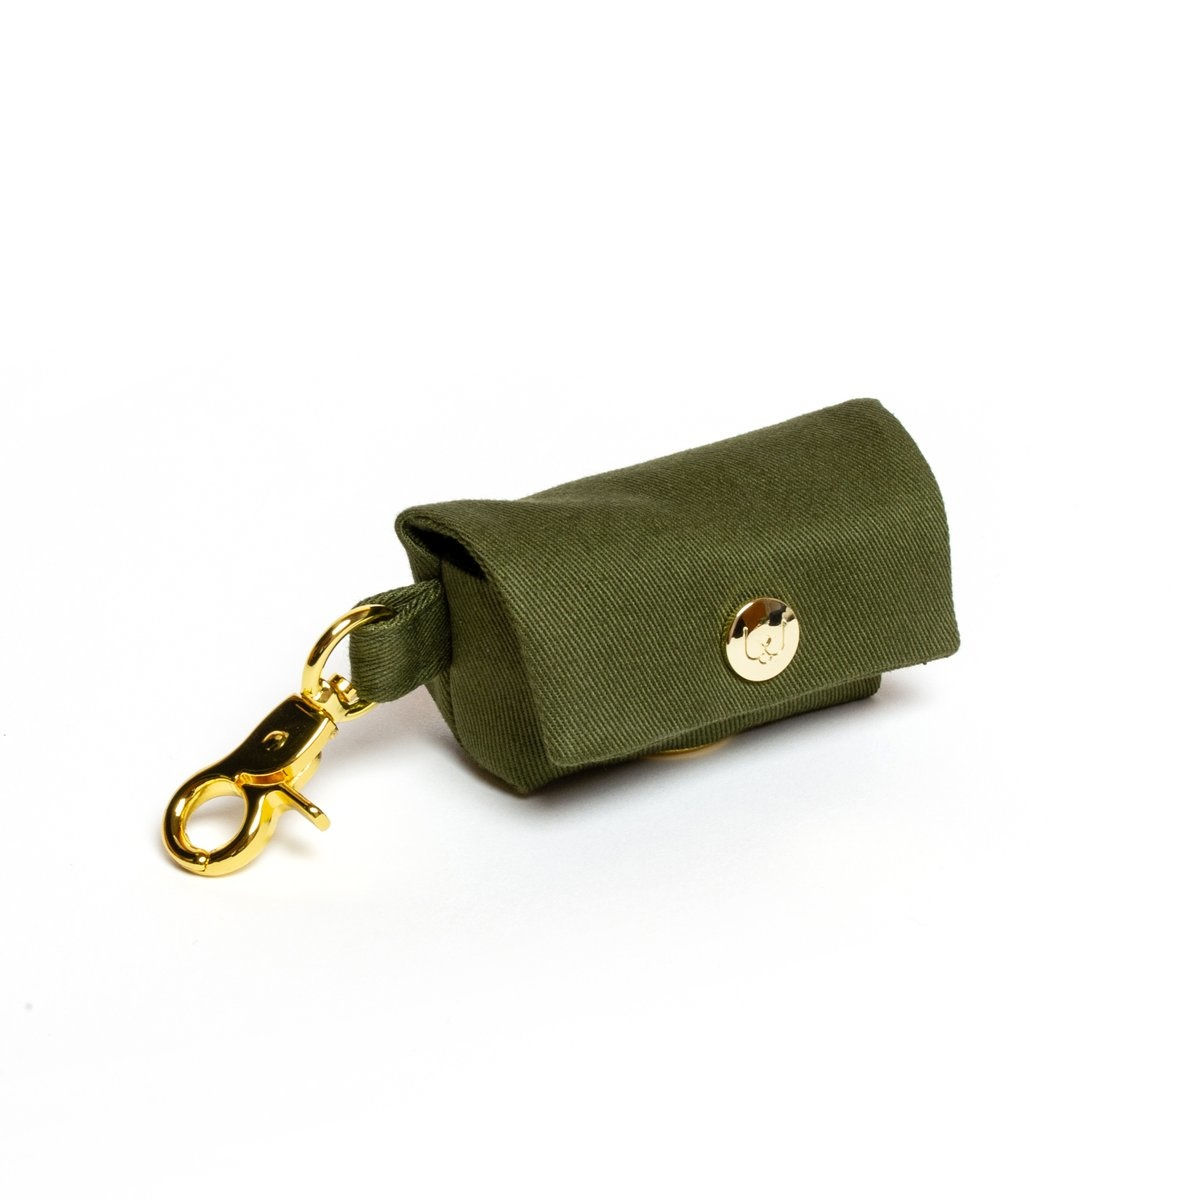 Eat Play Wag Eat Play Wag - Olive Poop Bag Carrier